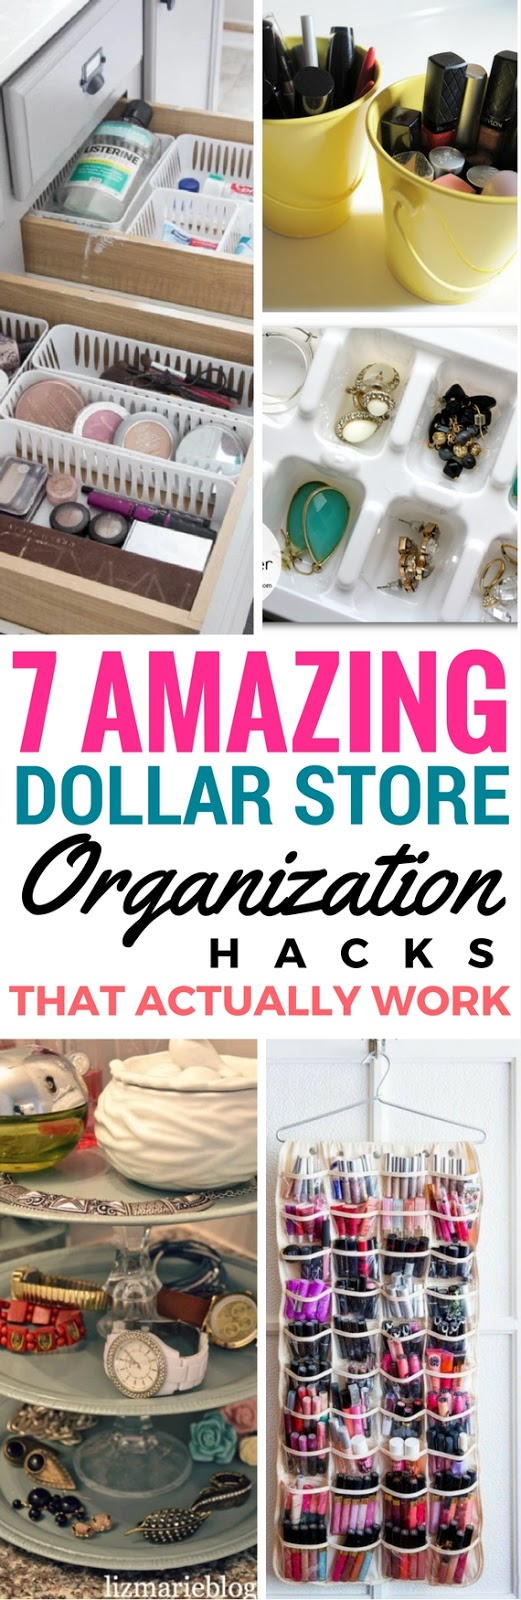 dollar store organizing ideas, dollar store organization, dollar store diy projects, dollar store hacks, diy dollar store home decor ideas